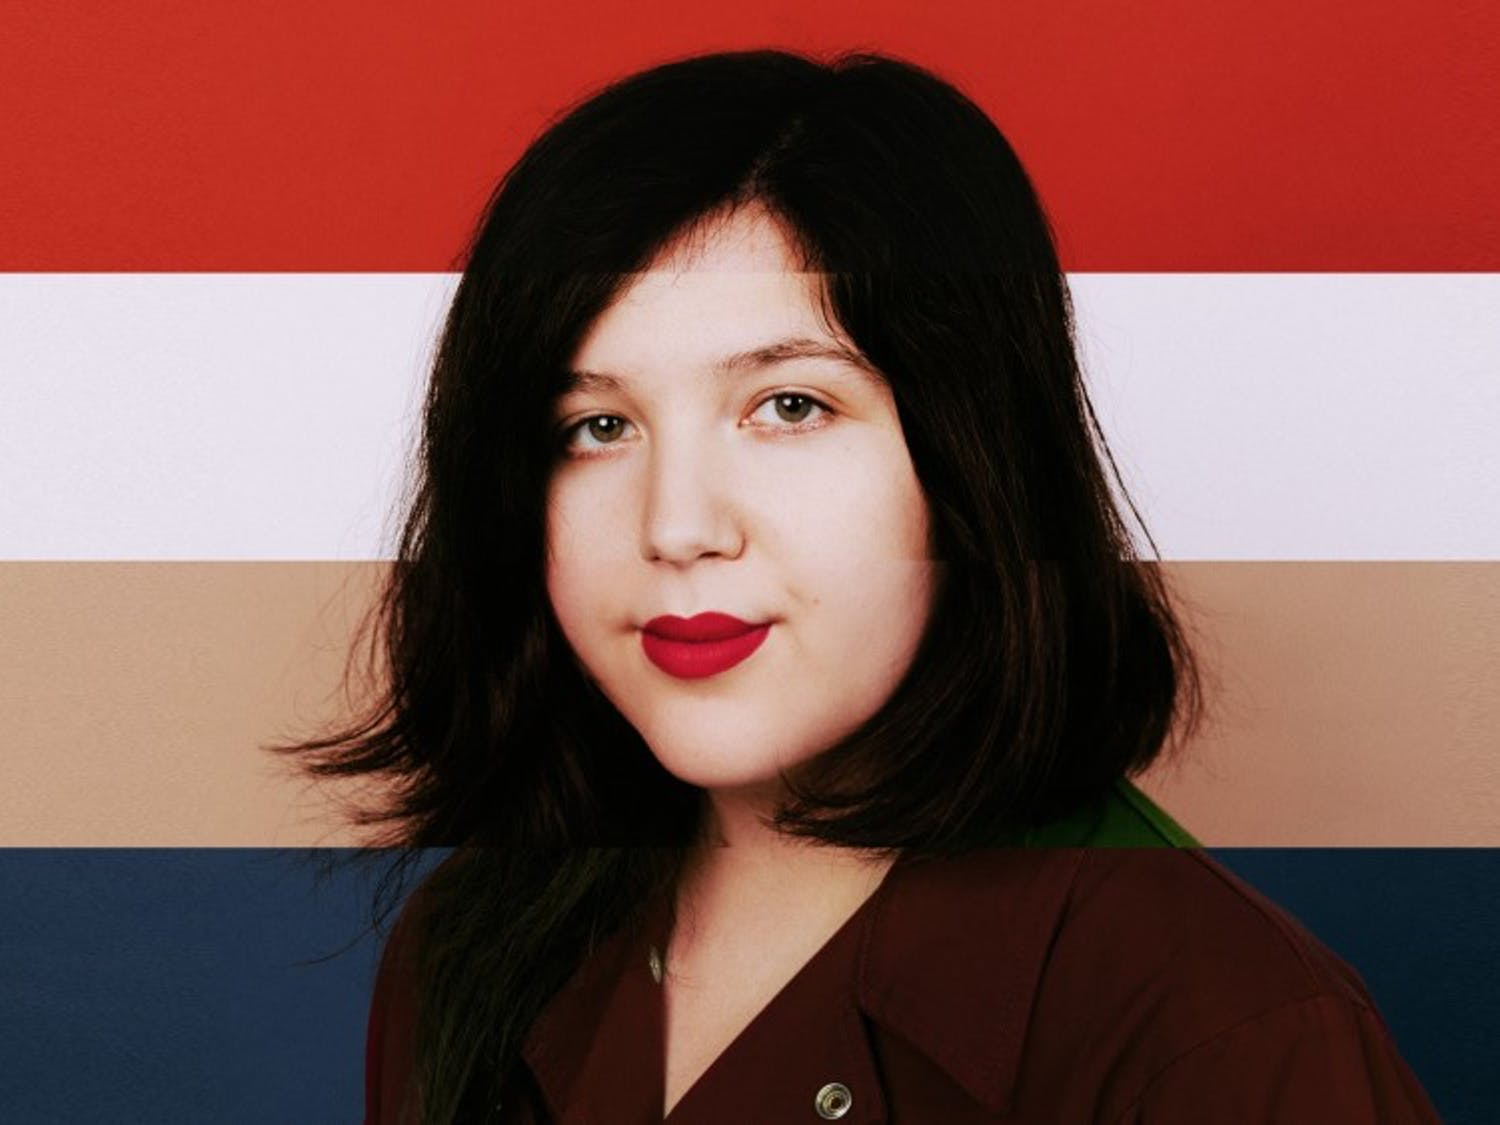 Indie-rock singer-songwriter Lucy Dacus headlined a concert of powerful voices and evocative lyrics with opening acts, Sun June and Liza Anne, at the Majestic Theater Friday night.